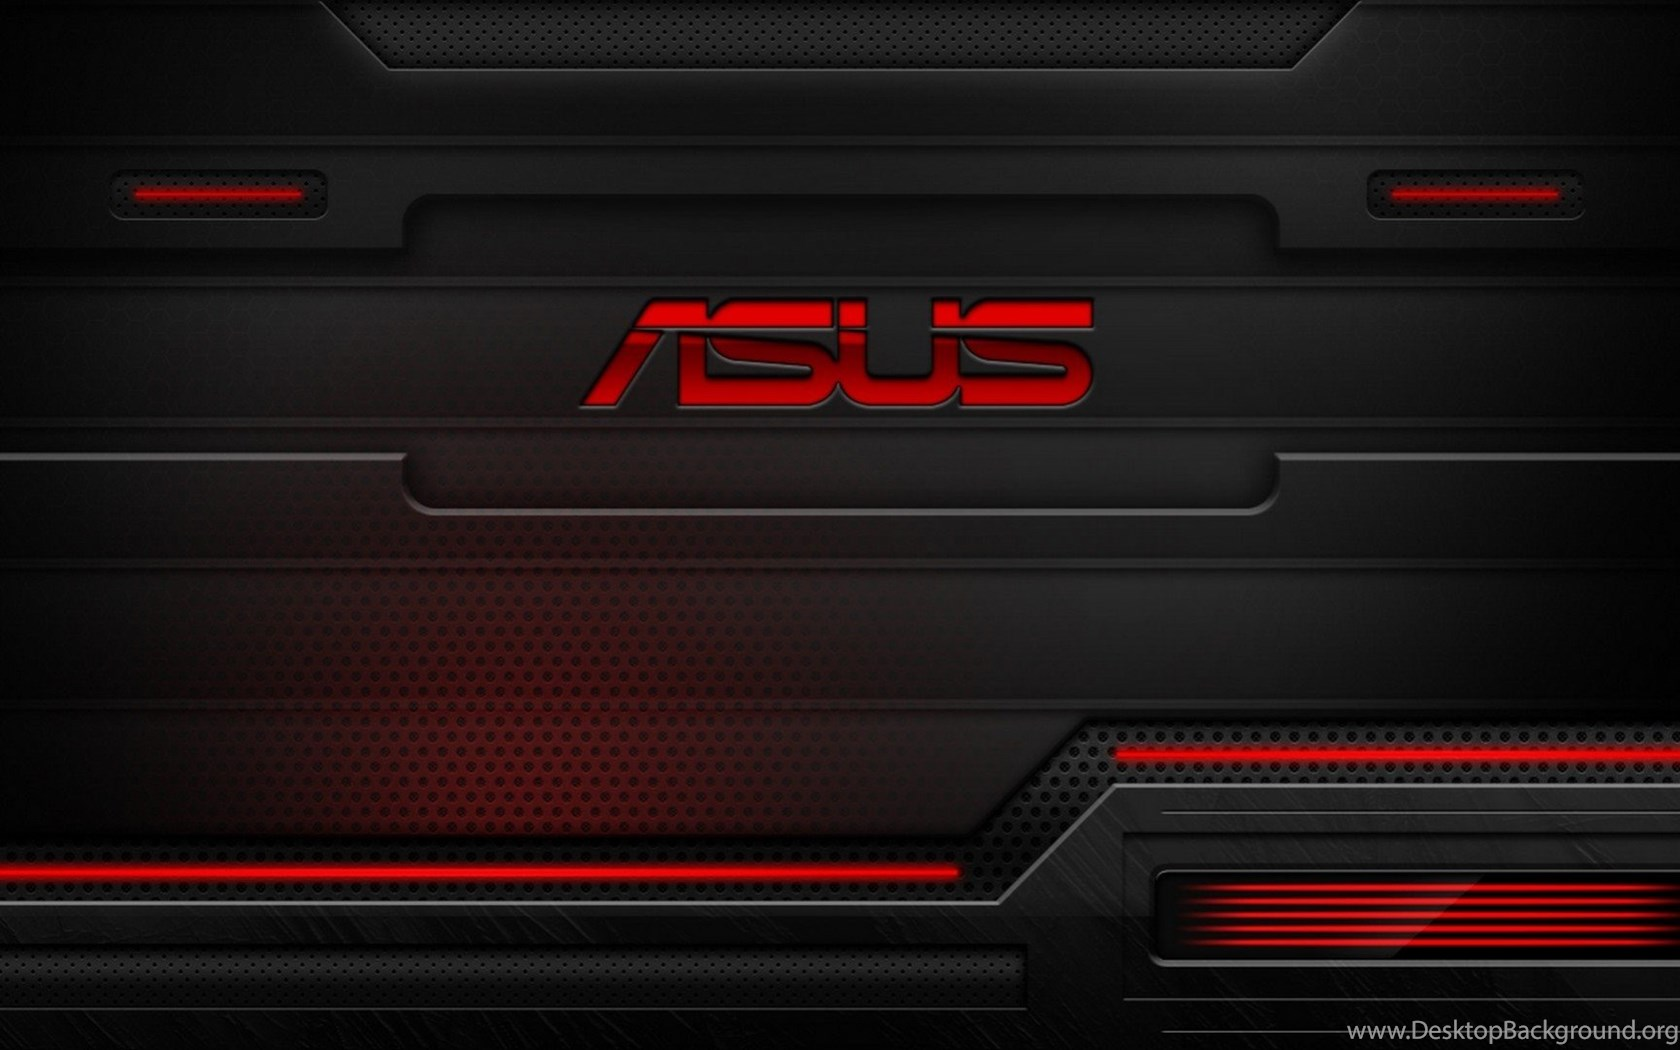 Asus Mobile Wallpaper: HD Red And Black Asus Technology Wallpapers For Desktop